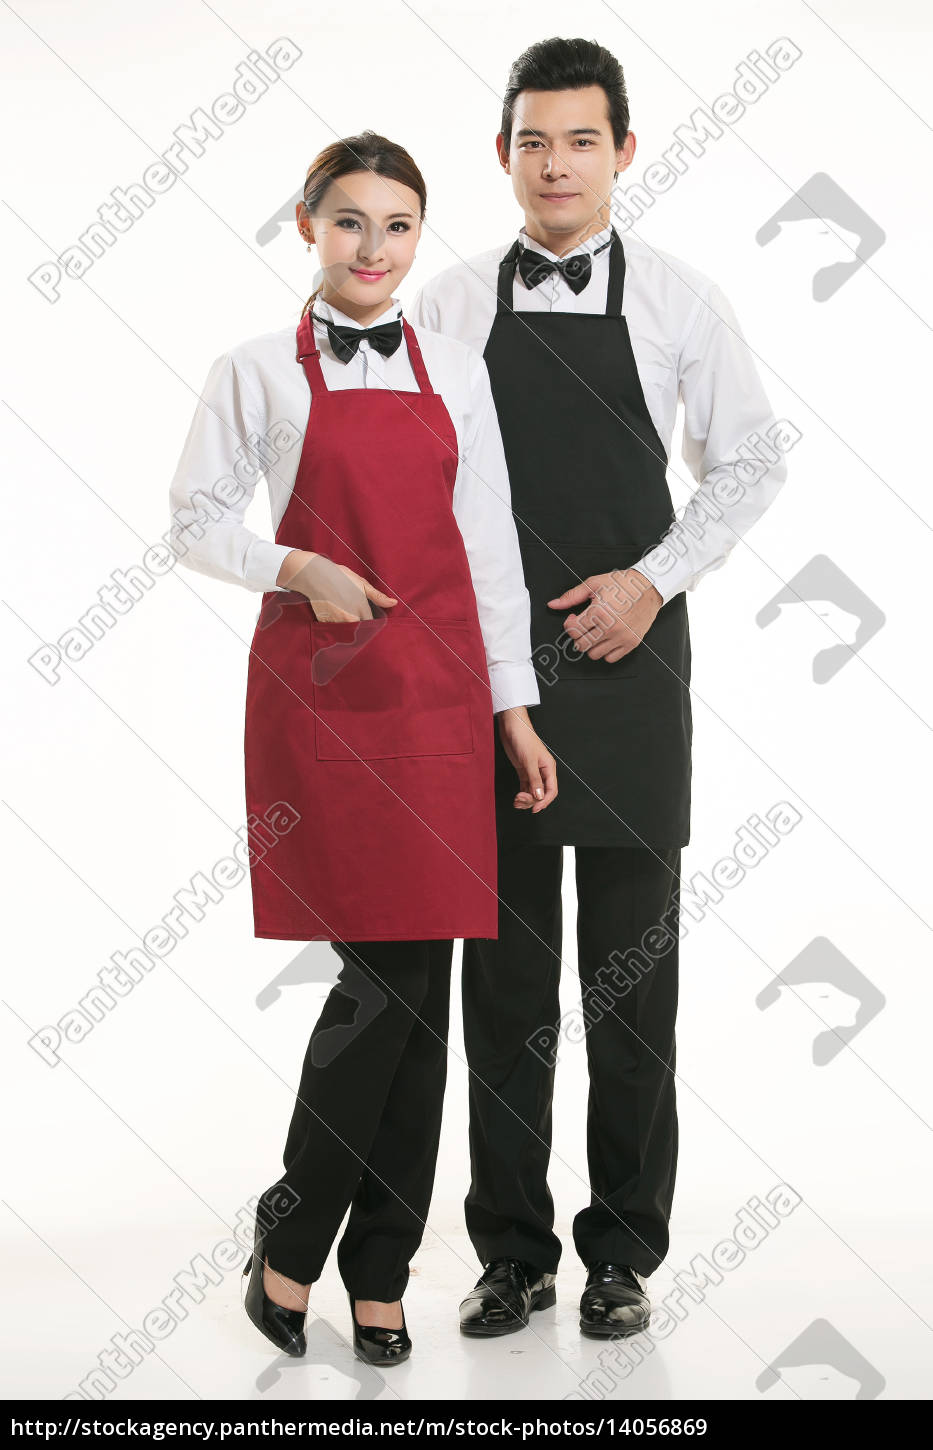 wear, clothing, occupation, chinese, waiters, in - 14056869